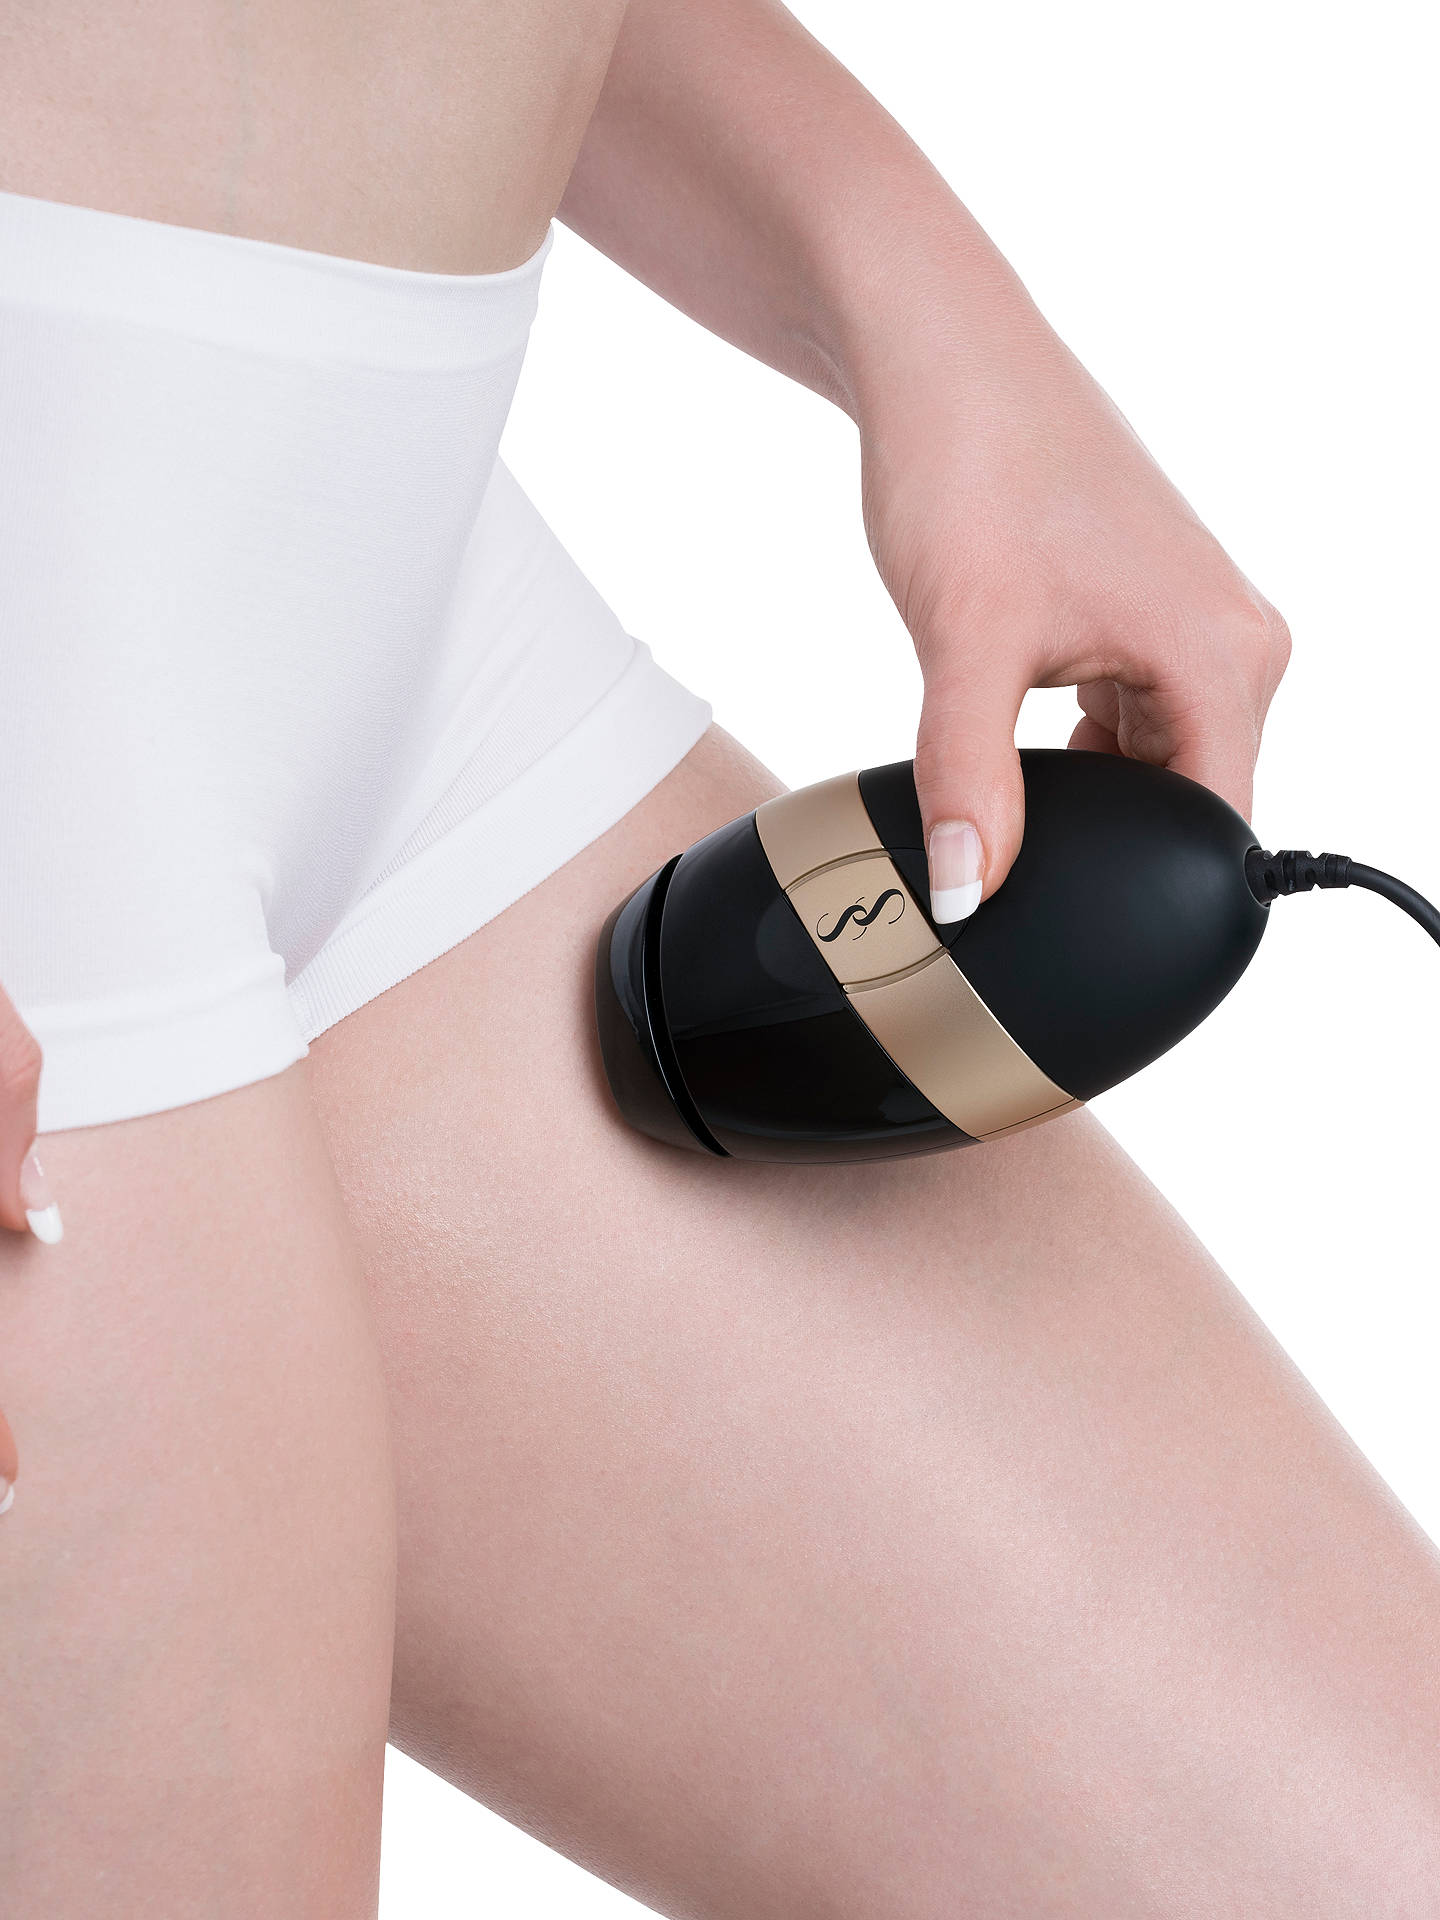 Buy SmoothSkin Bare IPL Hair Removal Device for Body and Face Online at johnlewis.com